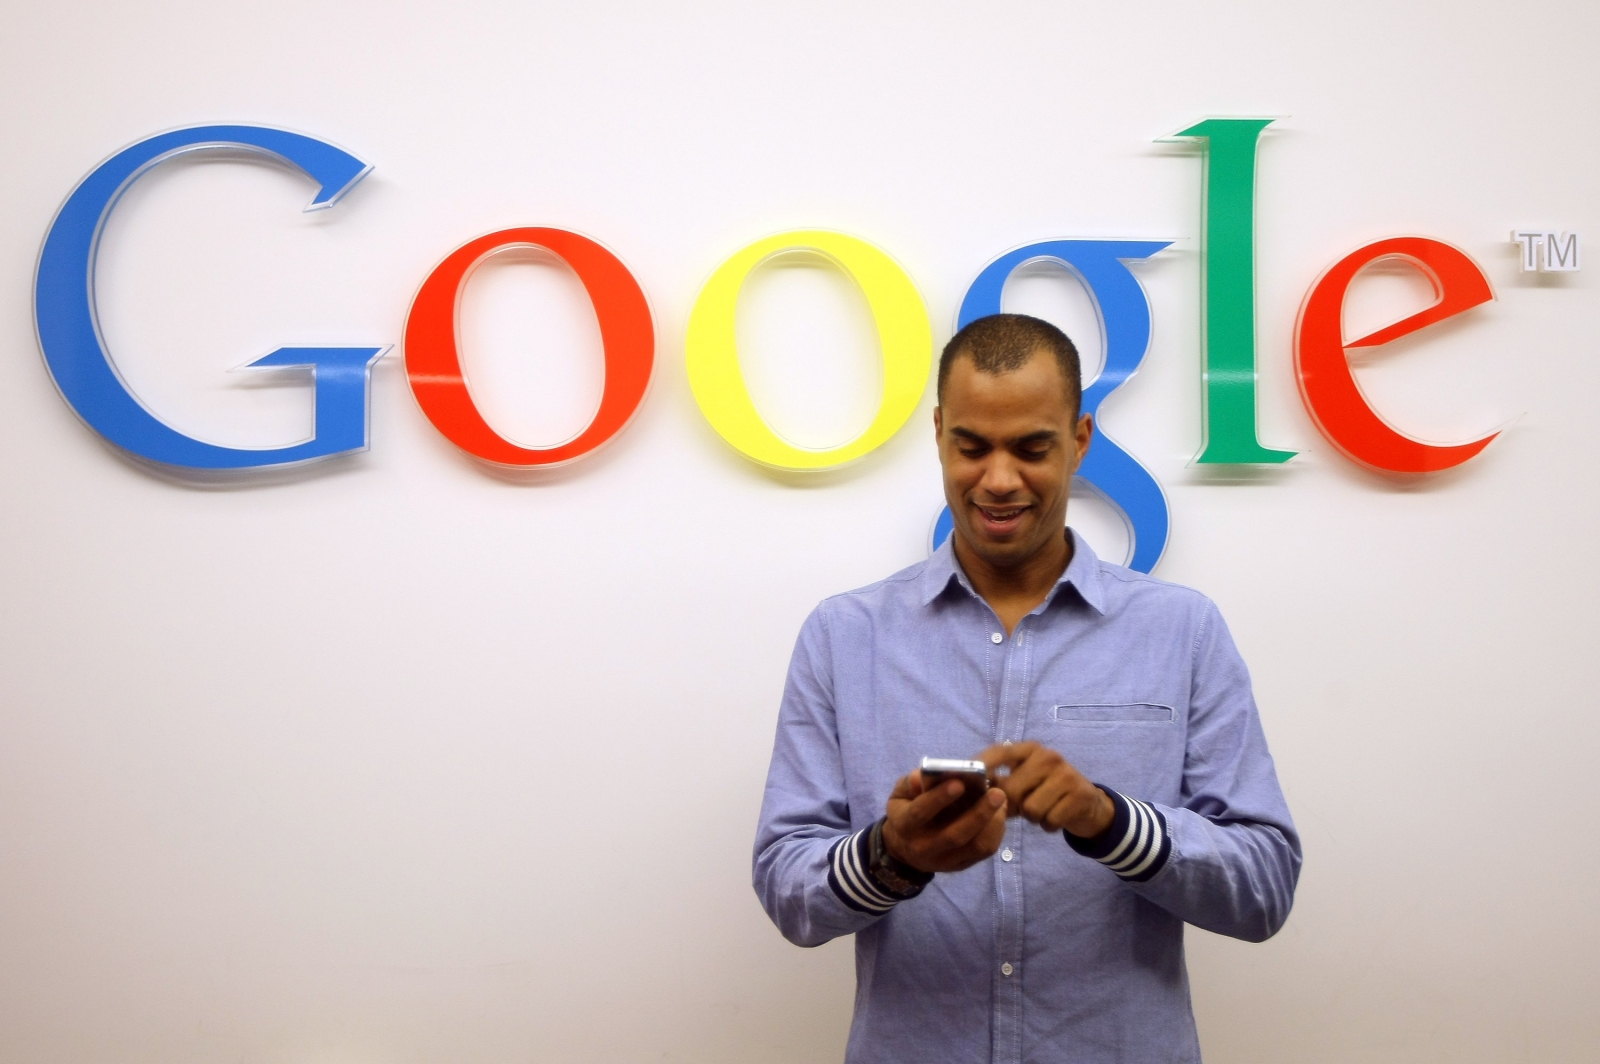 Mobilegeddon Google search algorithm changes